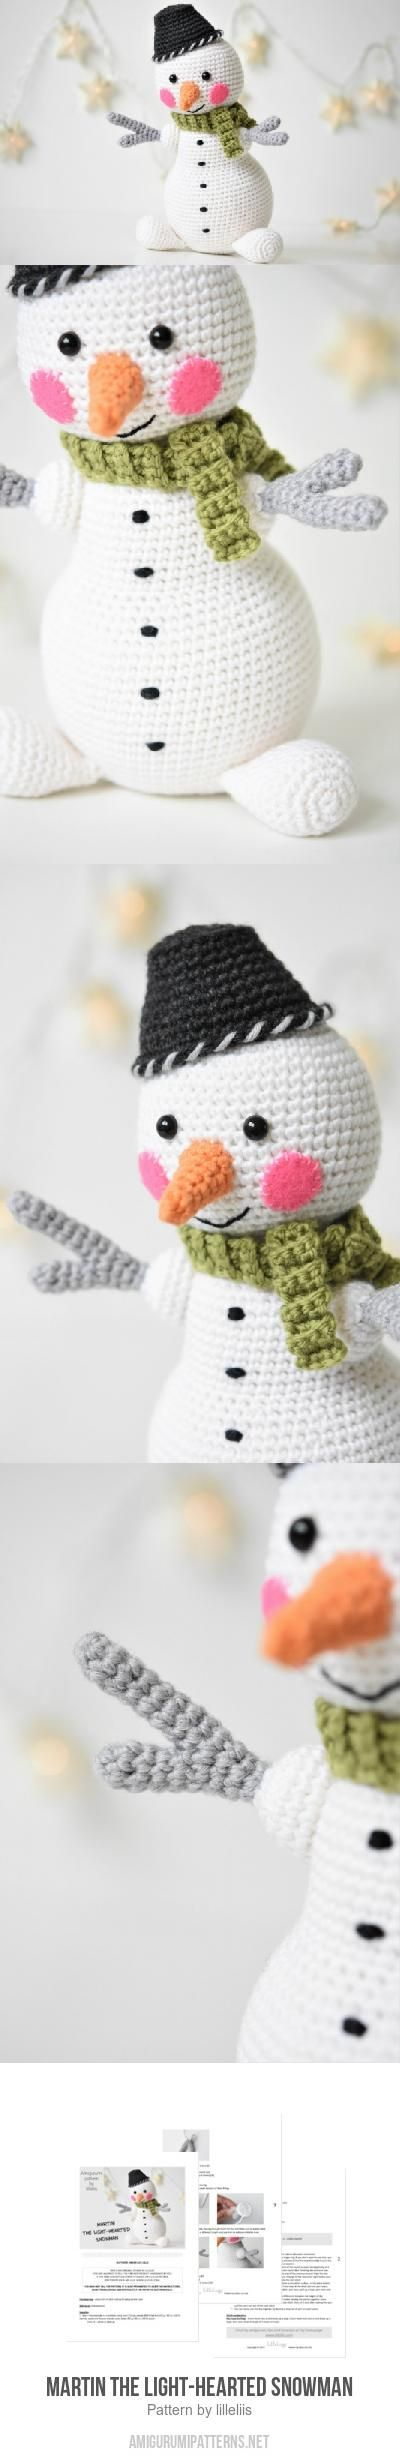 Martin the Light-hearted Snowman amigurumi pattern